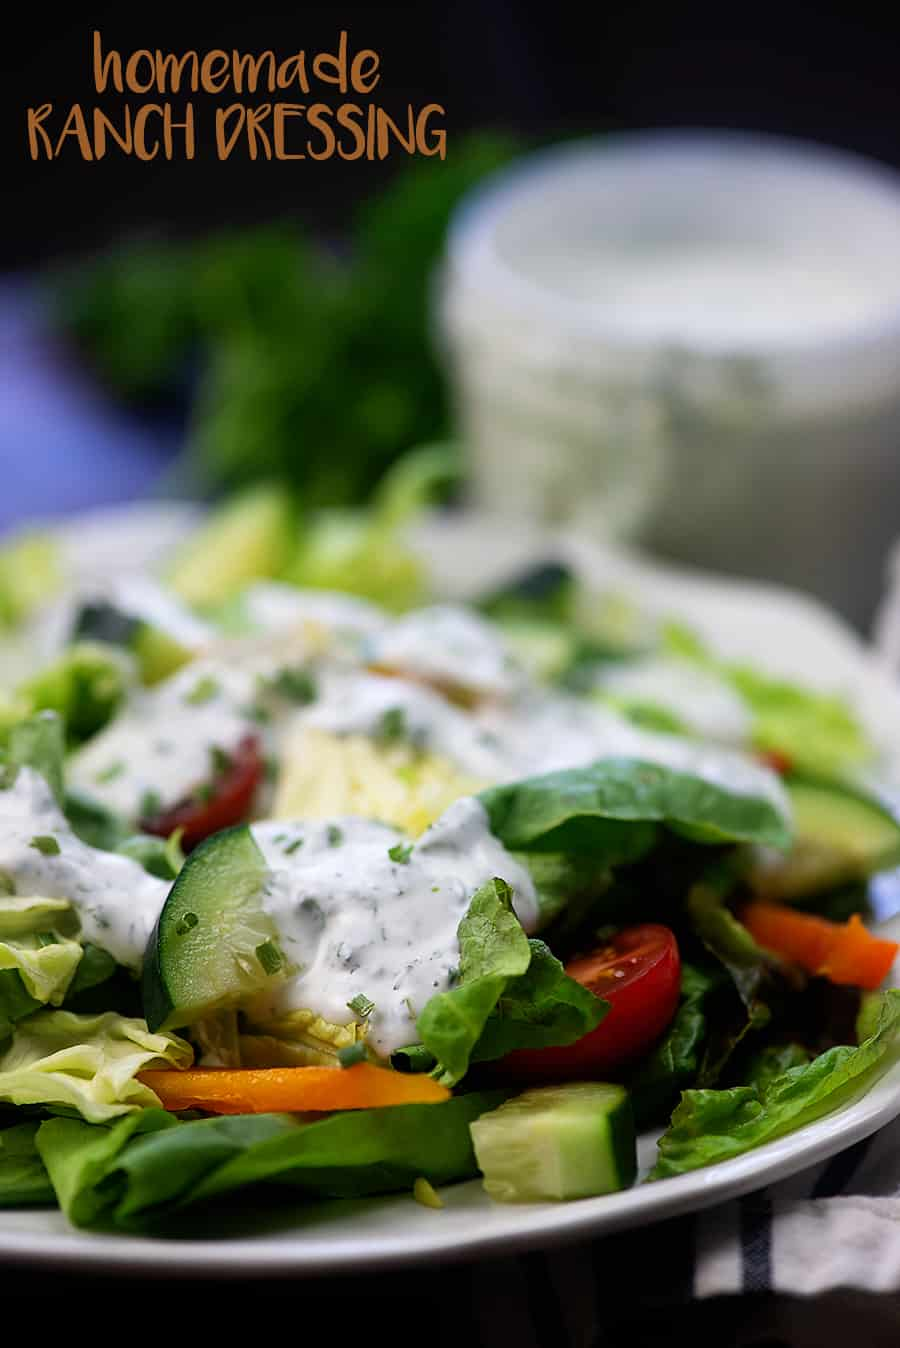 The BEST homemade ranch dressing! No packets of seasoning - just loads of fresh flavor and it's low carb and keto too! #lowcarb #keto #ranch